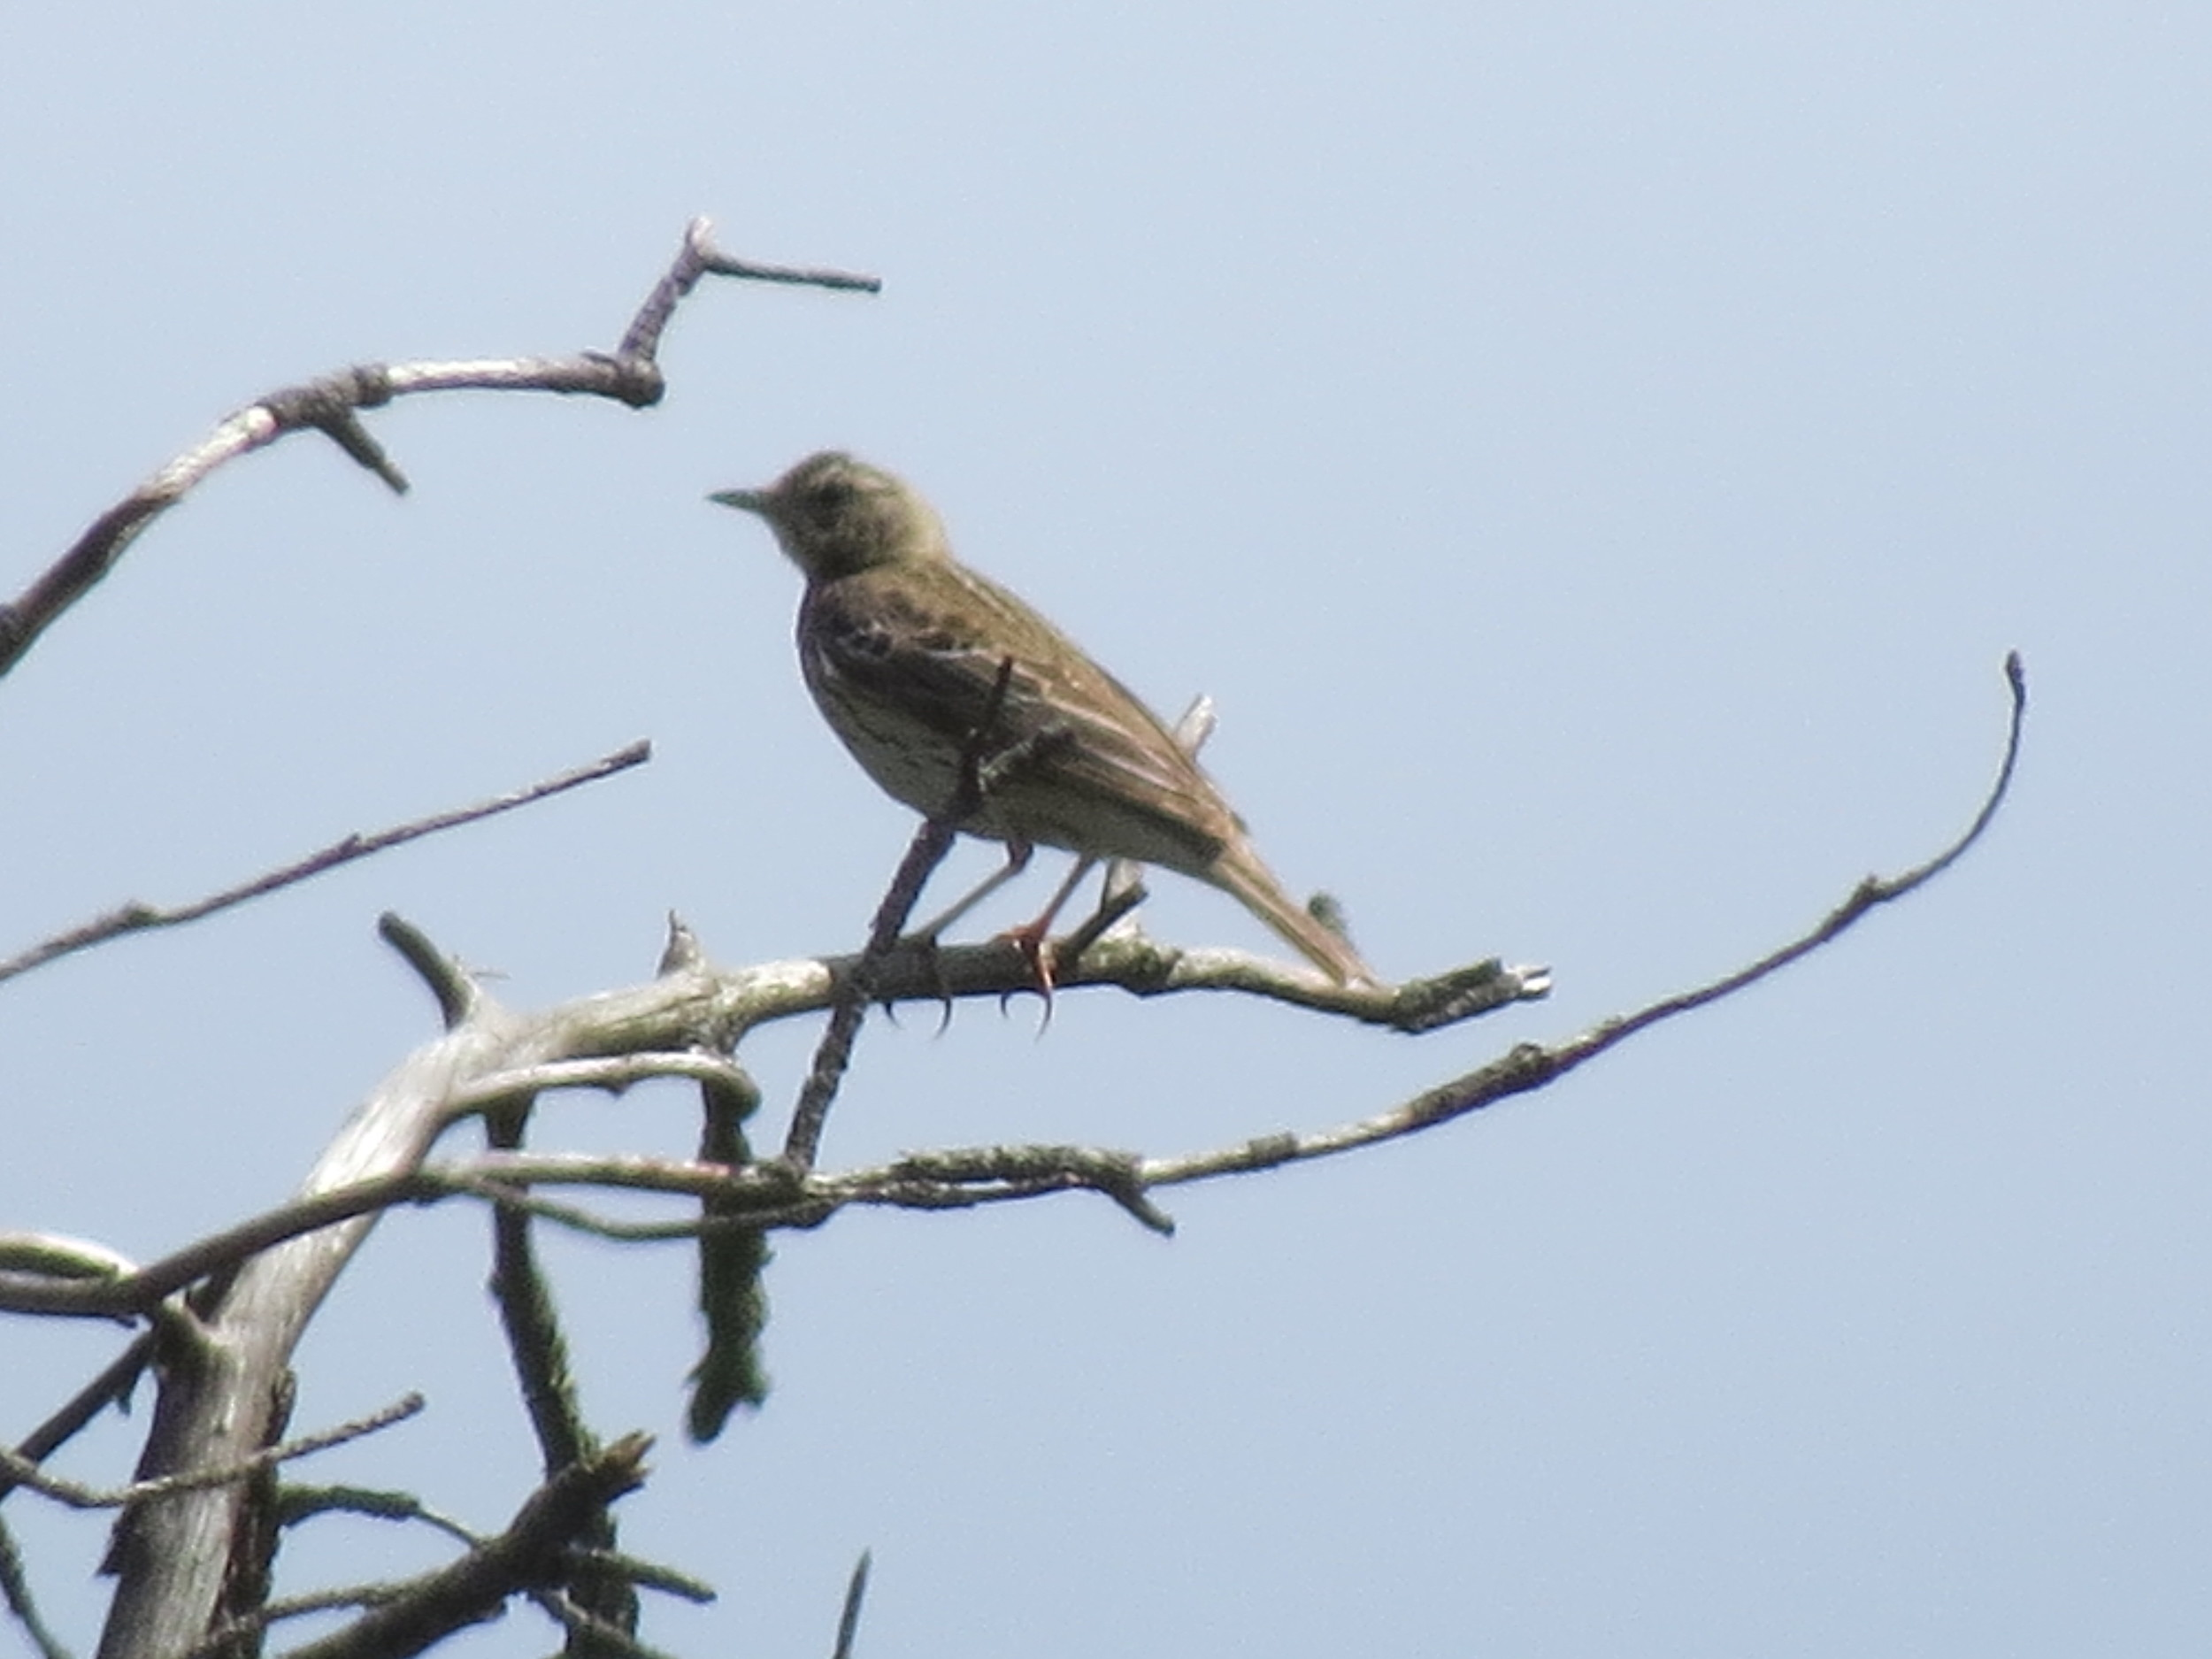 Meadow Pipit, sent in by Ruud from The Netherlands